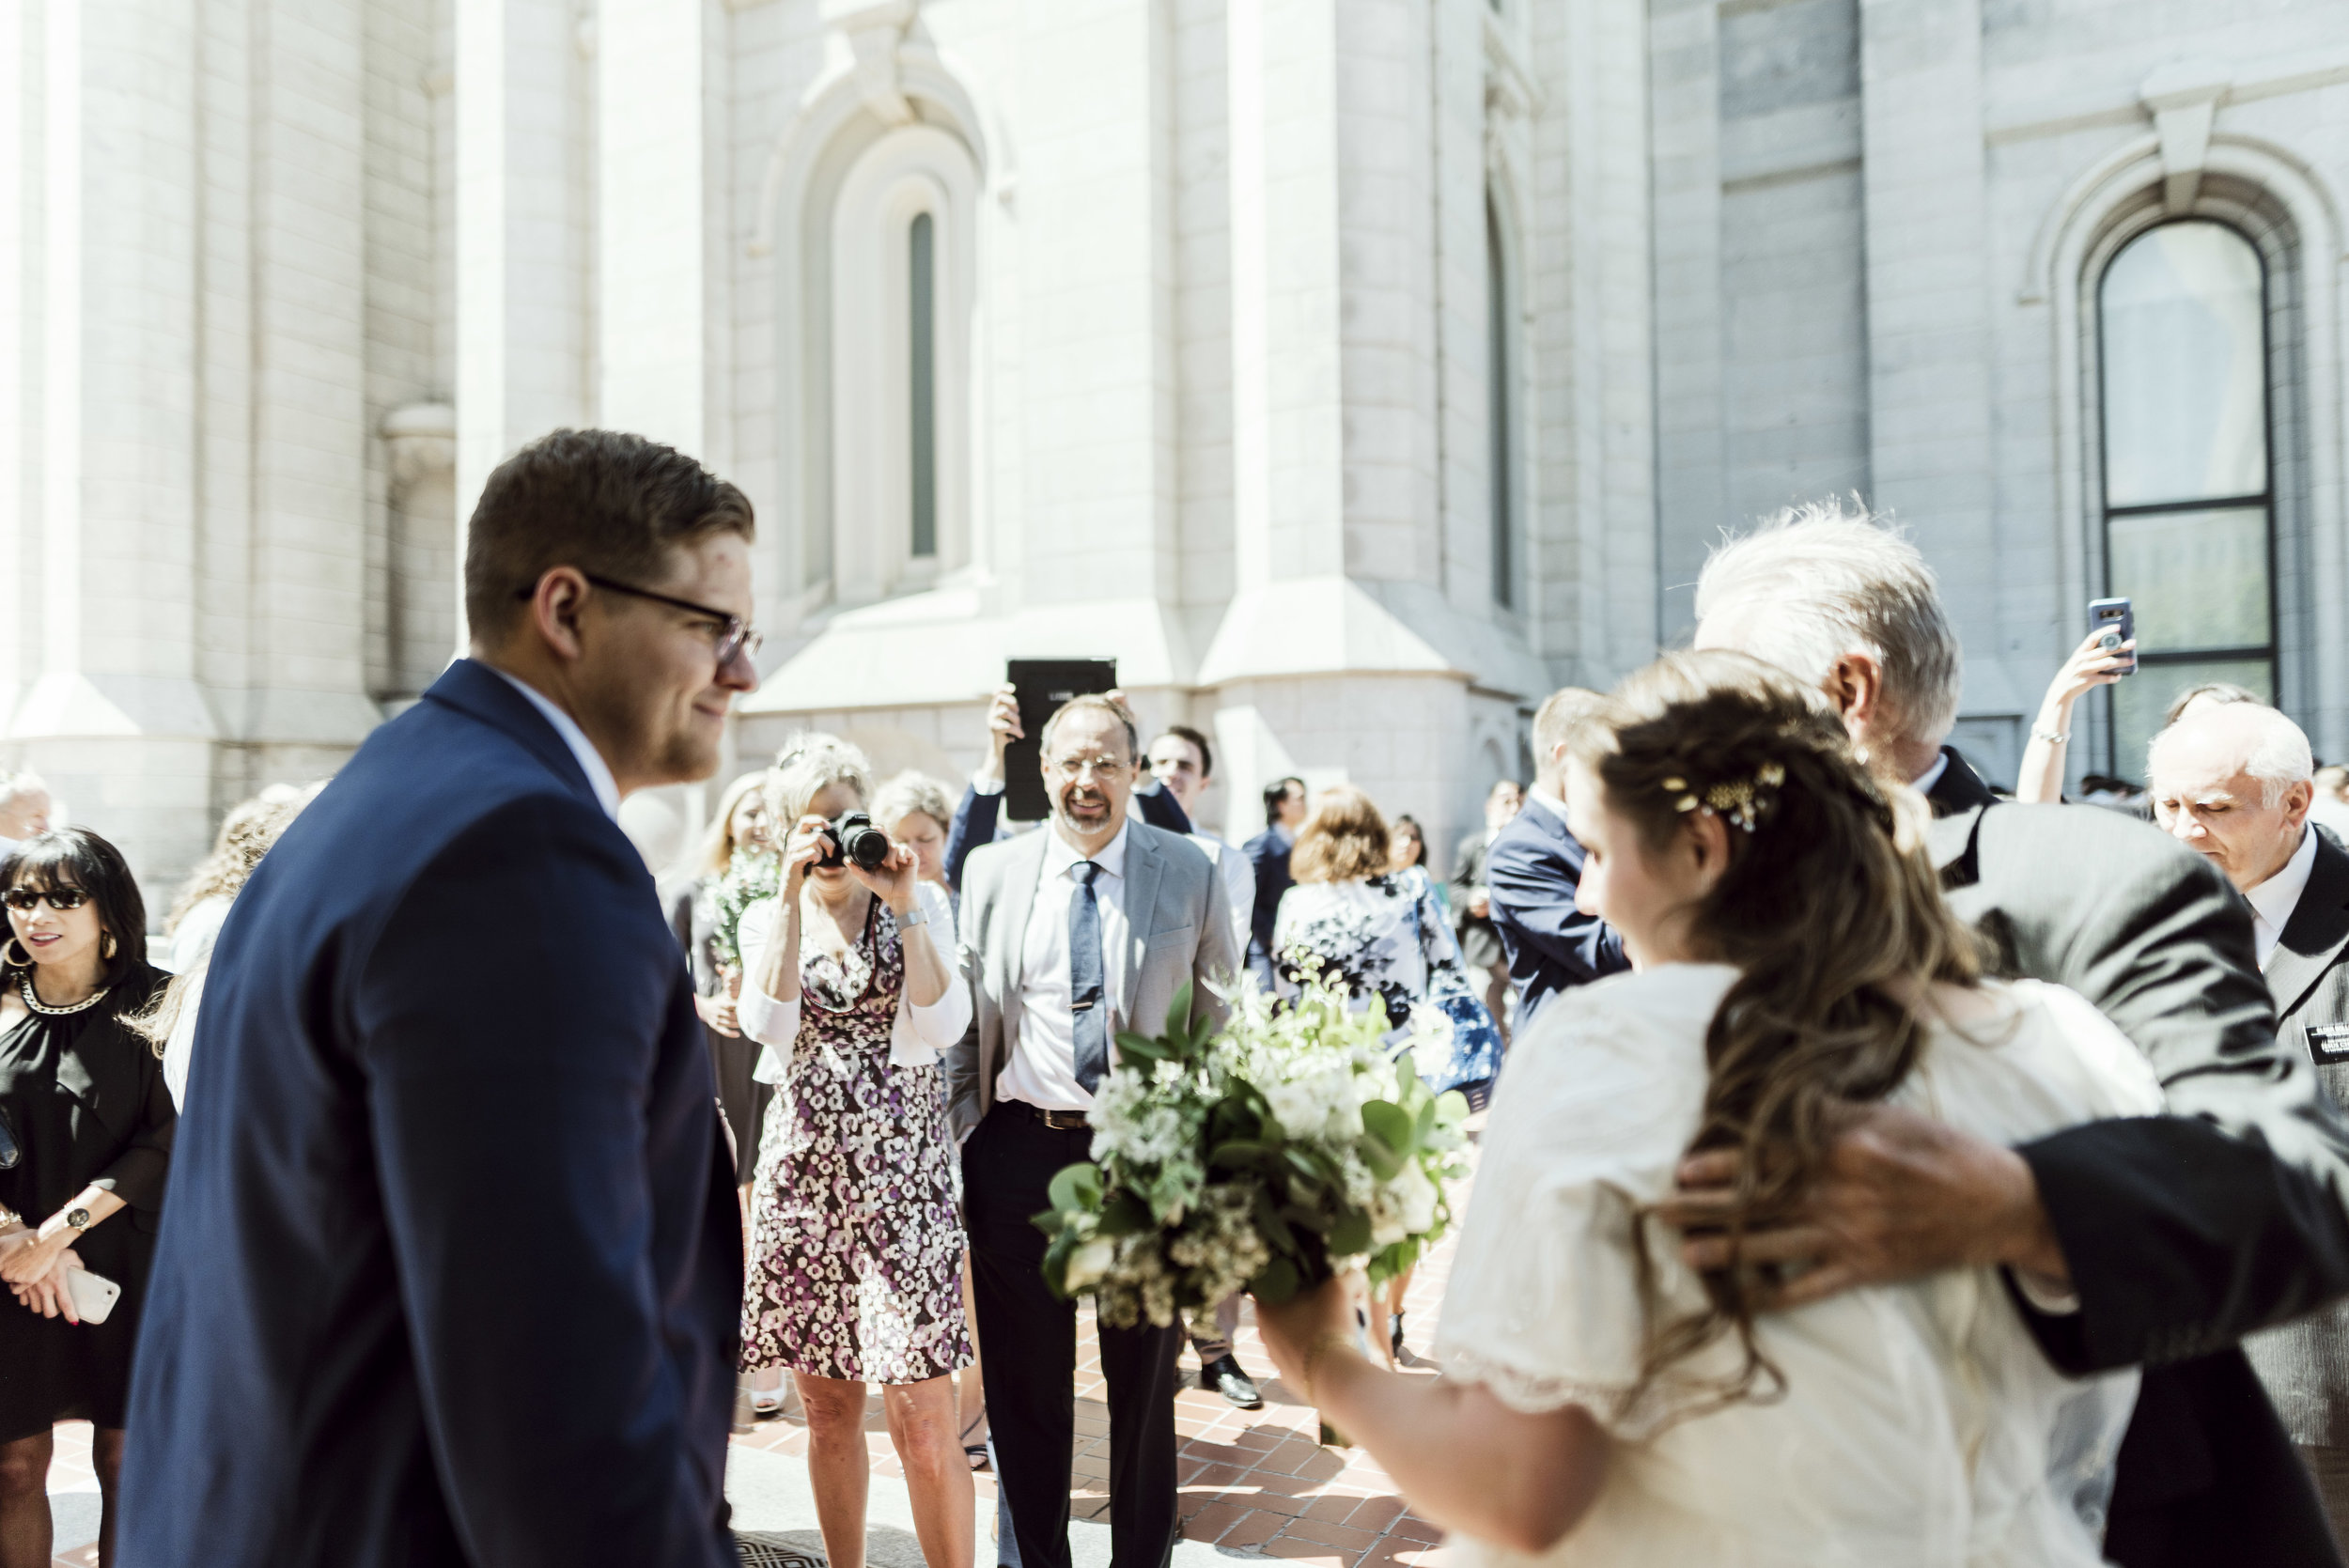 salt lake temple wedding_alyssa sorenson-8.jpg